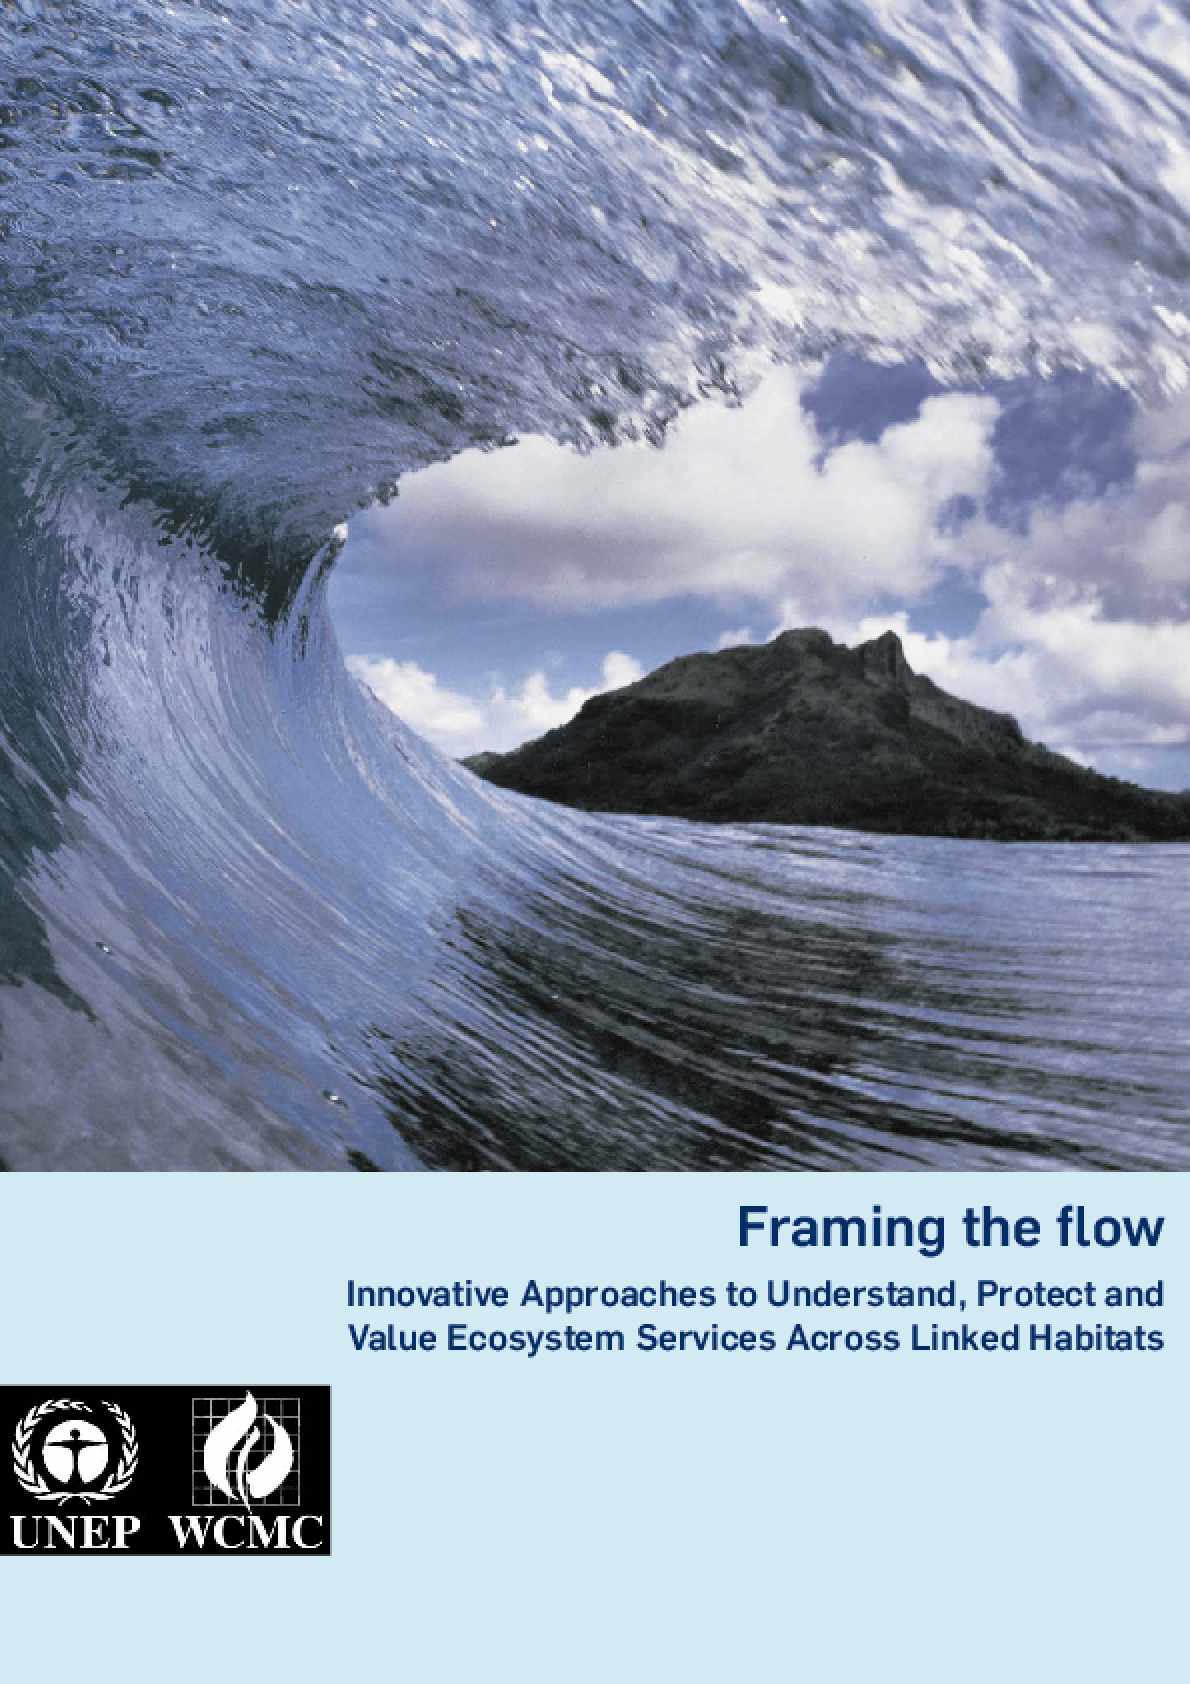 Framing the Flow: Innovative Approaches to Understand, Protect and Value Ecosystem Services Across Linked Habitats